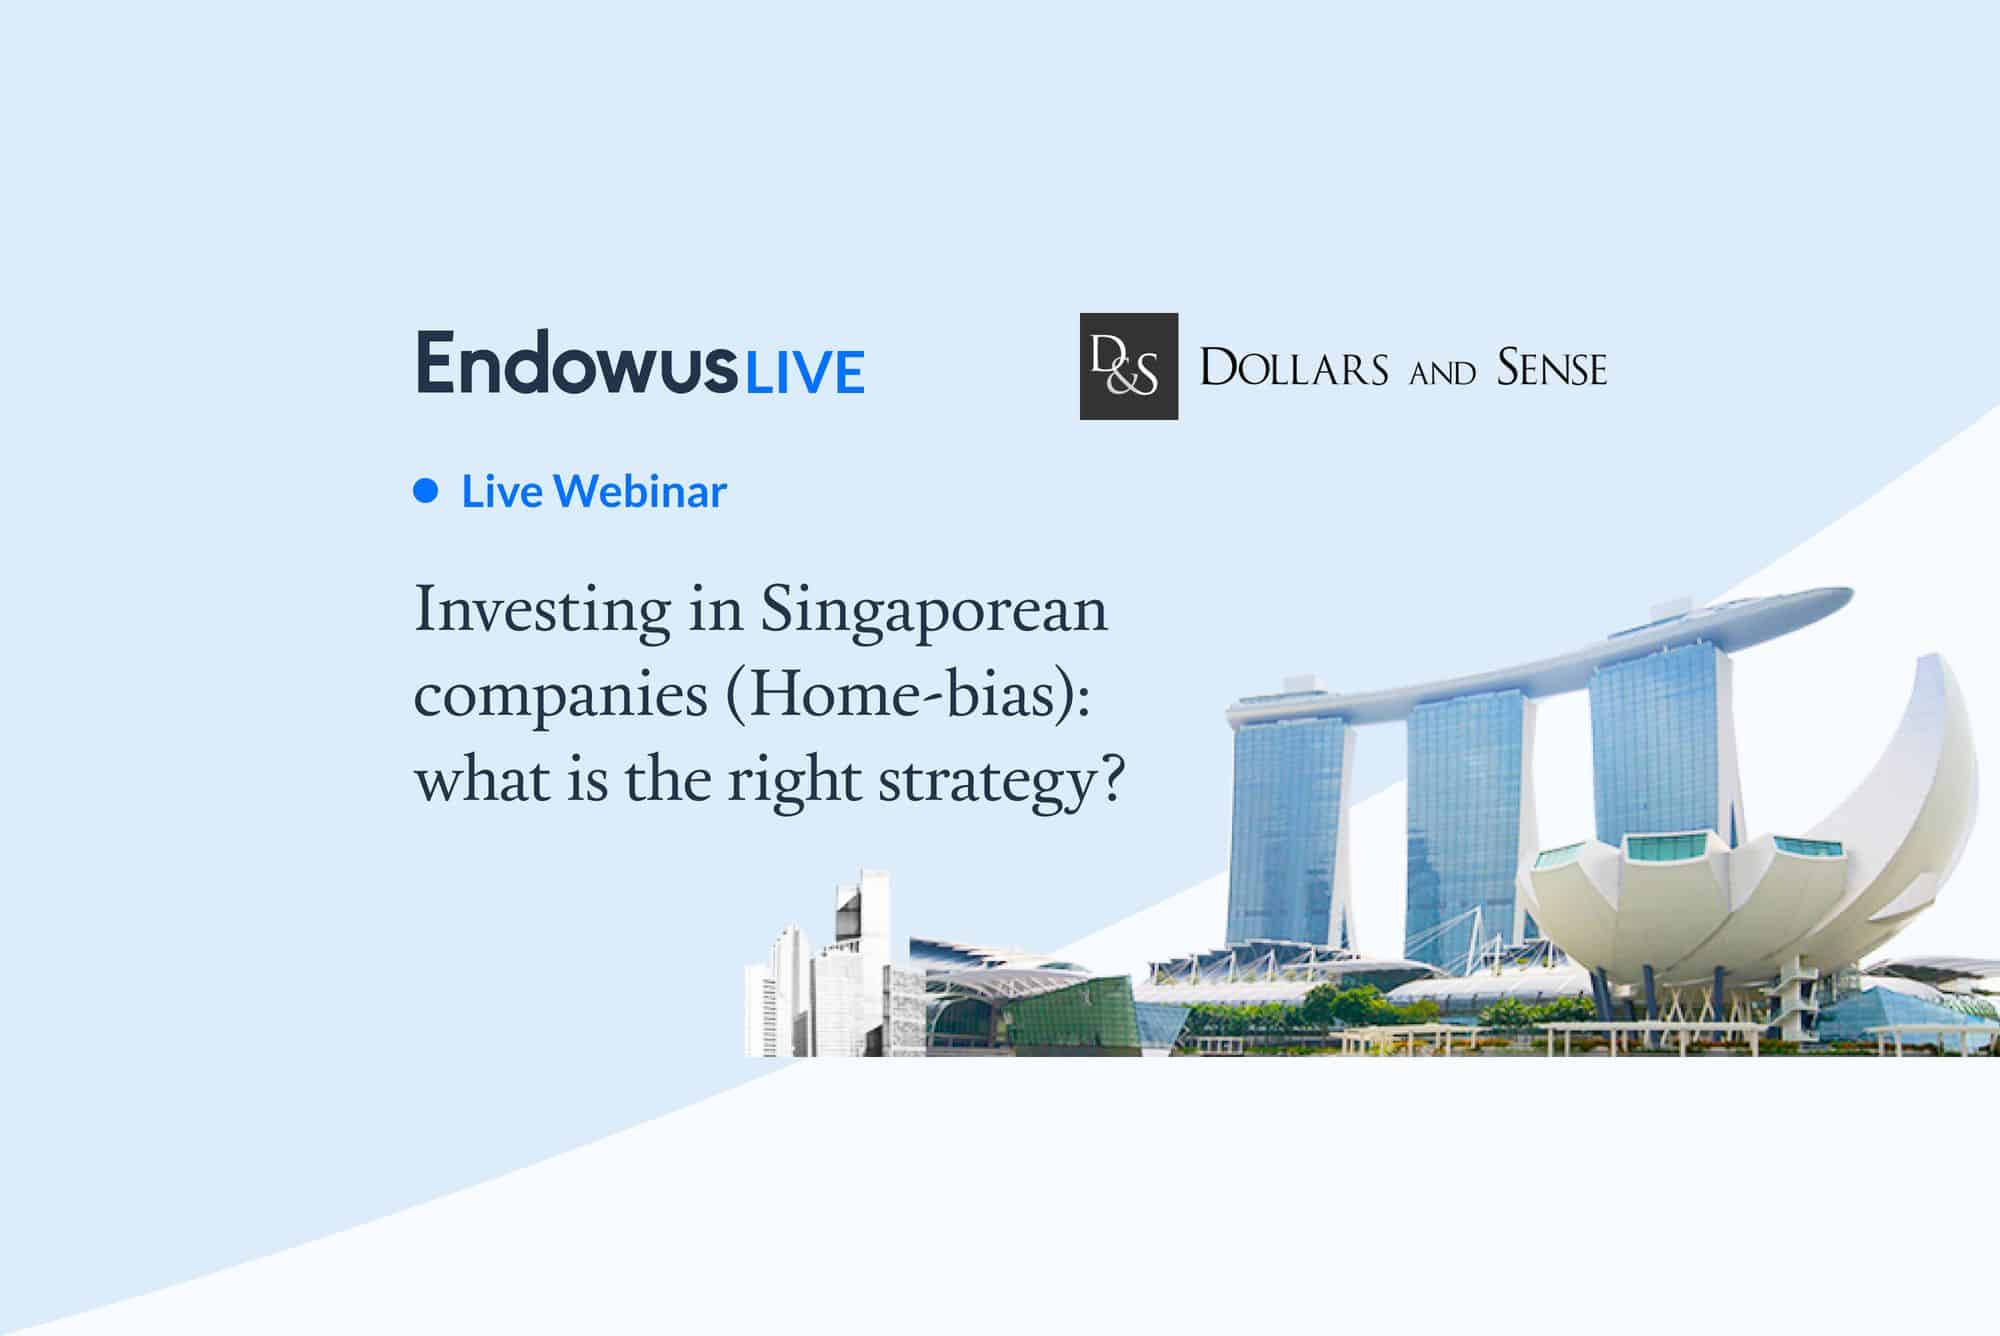 Webinar: Investing in Singaporean companies (Home-bias): What is the right strategy?